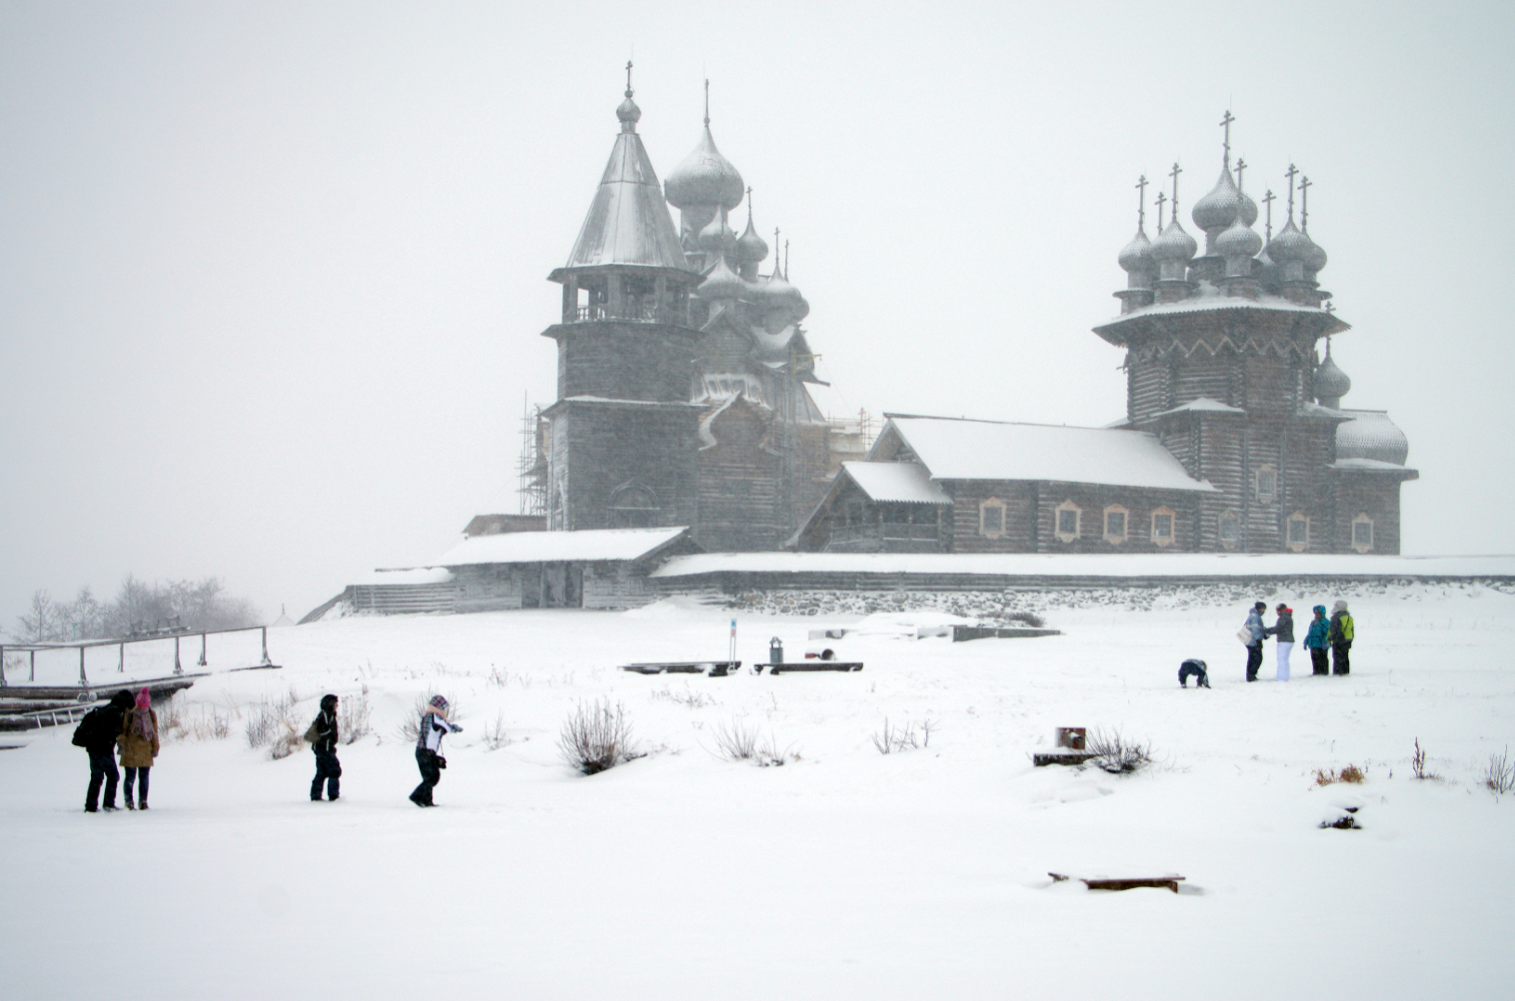 The Kizhi Pogost in Karelia has two wooden churches and an 18th century octagonal bell tower.